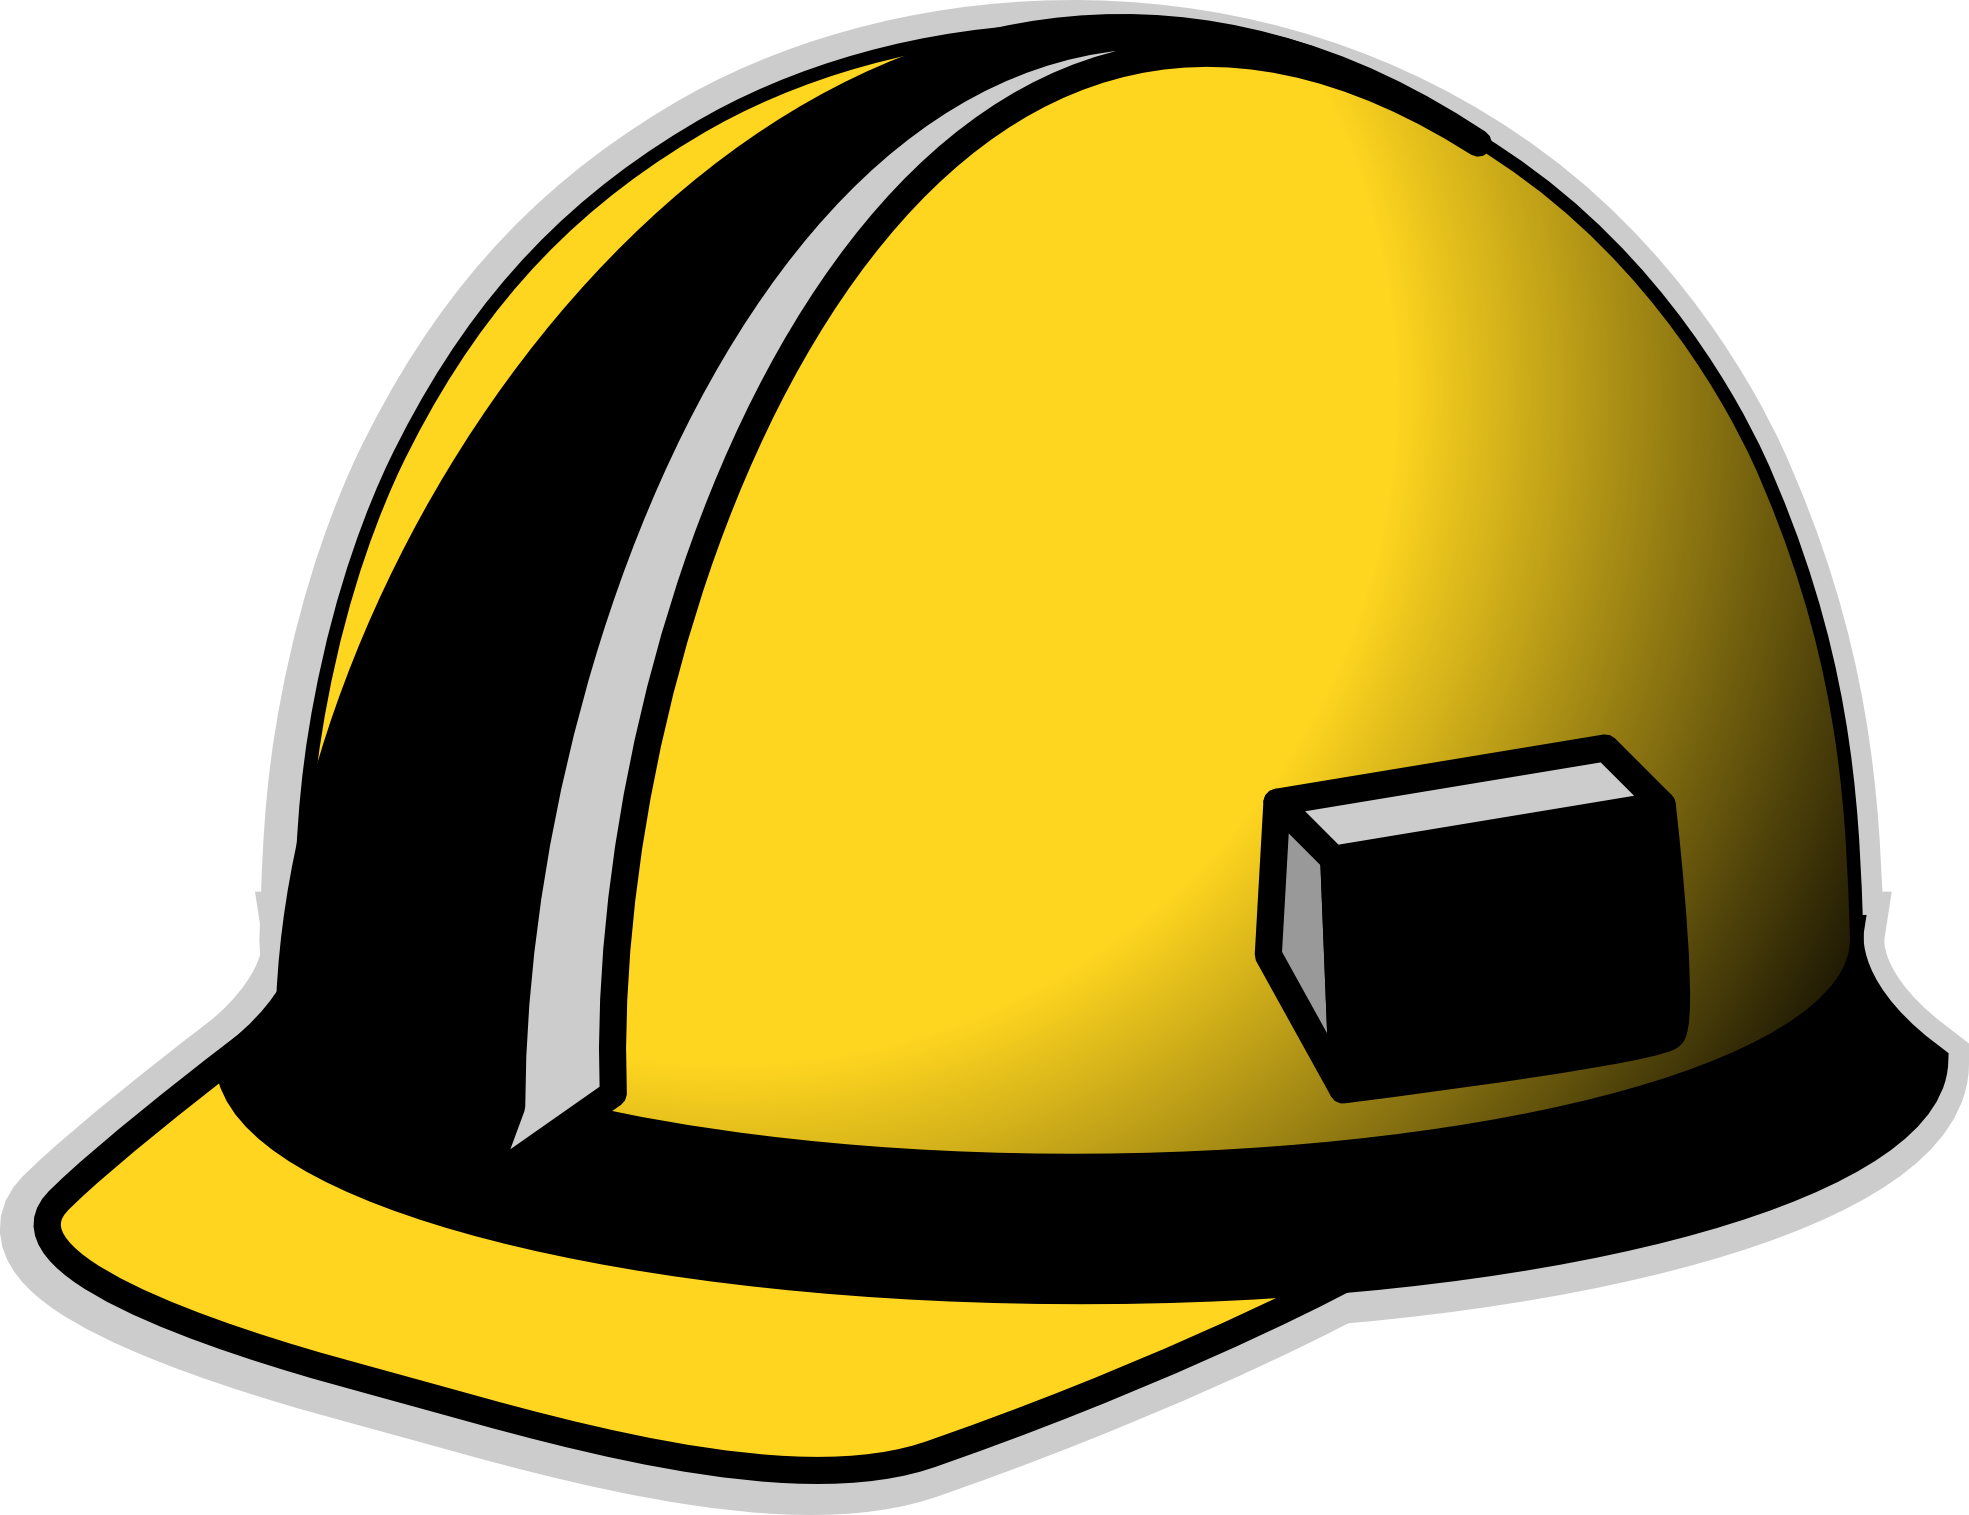 Construction Hat Clipart Clipart Panda Free Clipart Images